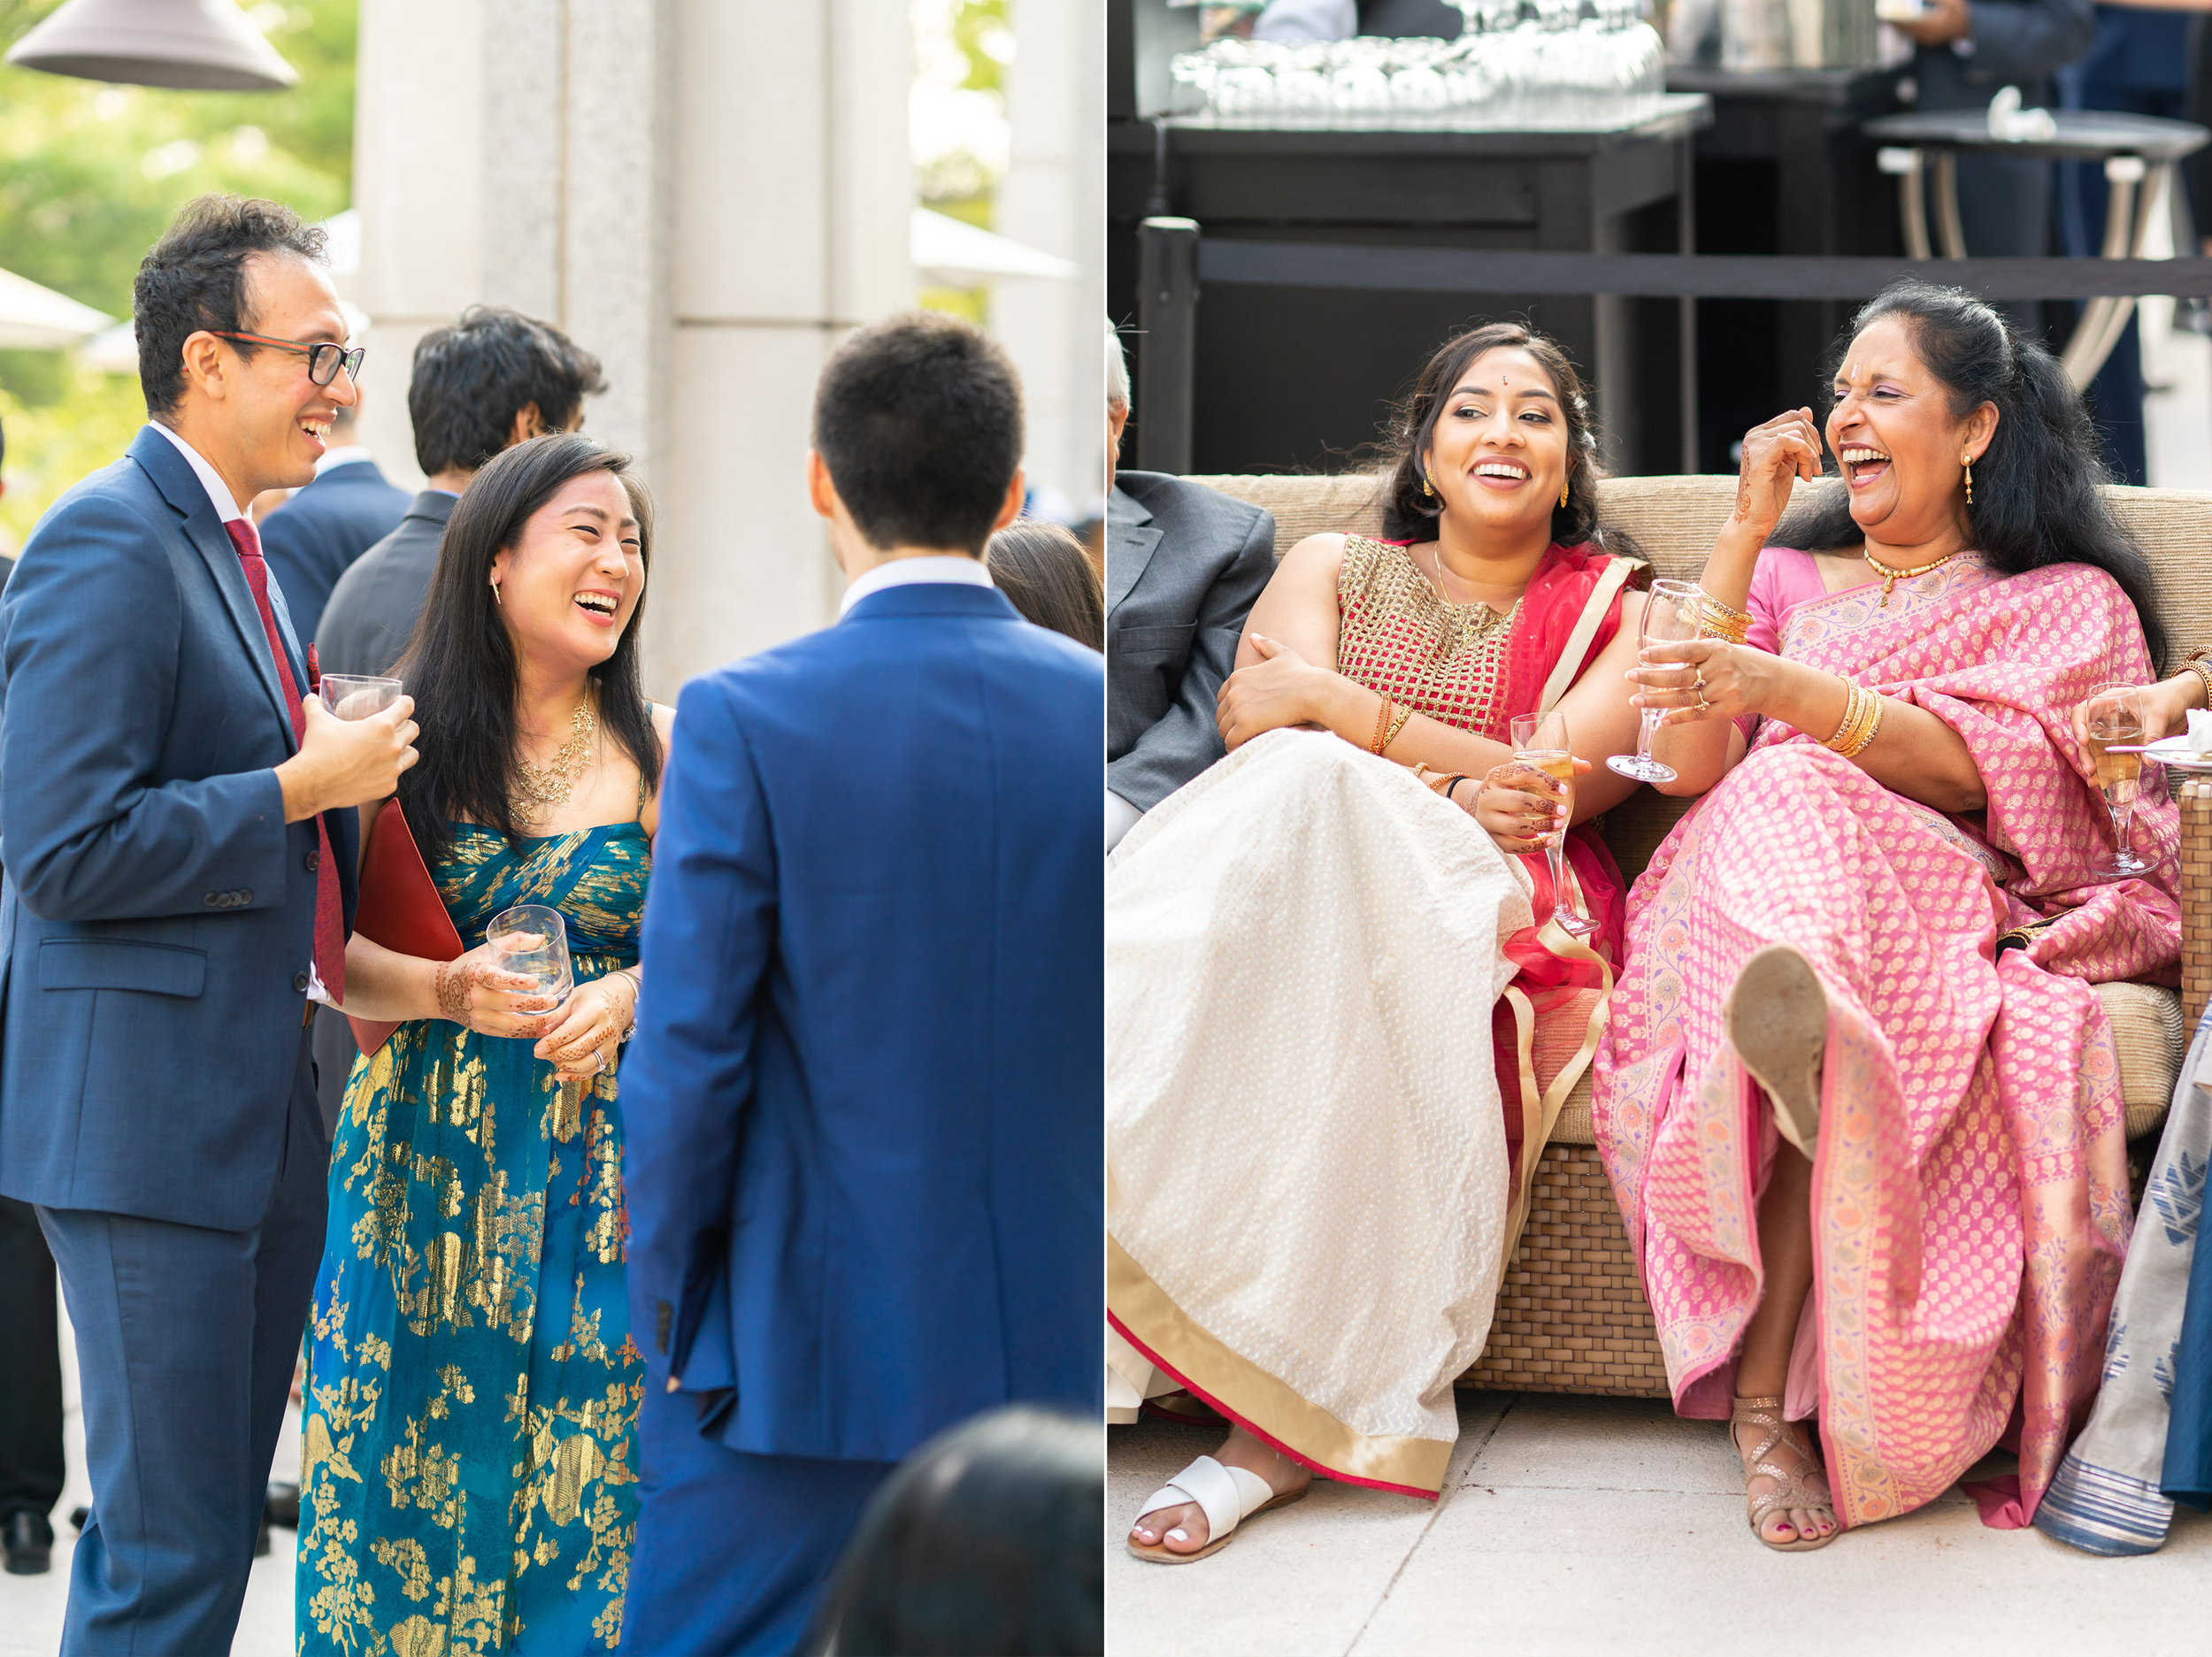 Wedding guests laughing during cocktail hour at bethesda north marriott